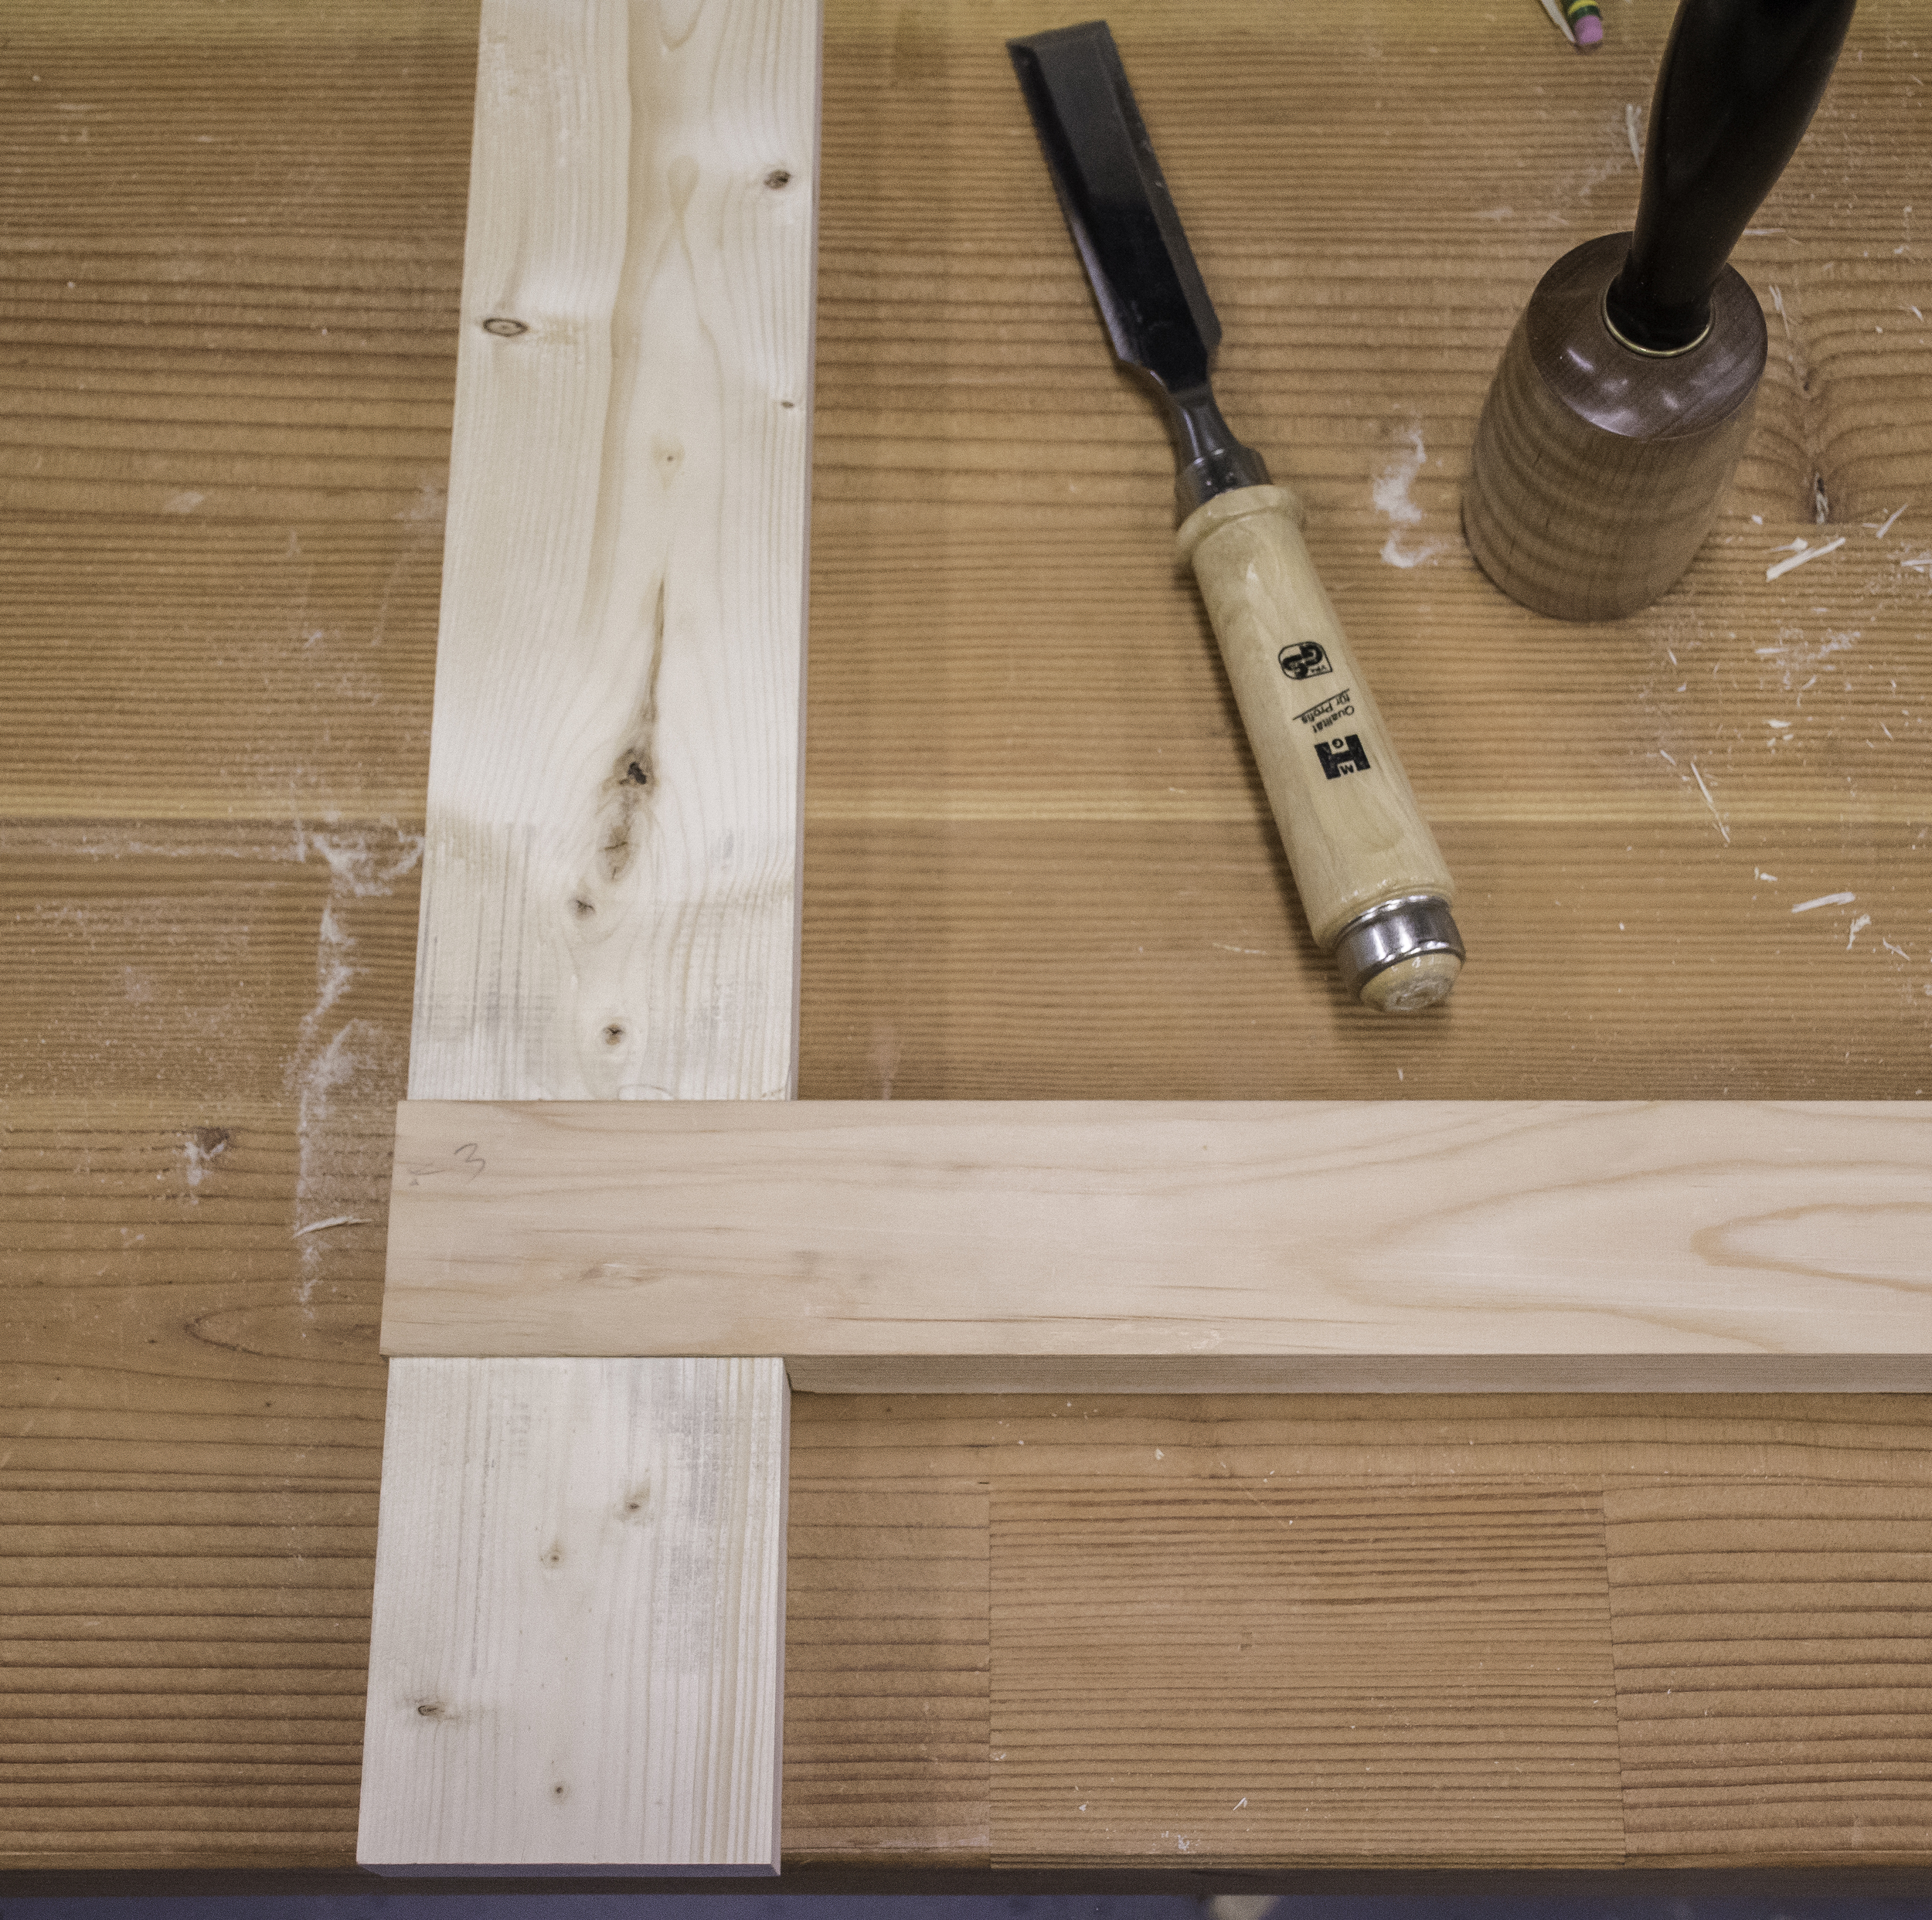 The sawbench is an exercise in half lap joints, which are easy and fun to cut with hand tools.